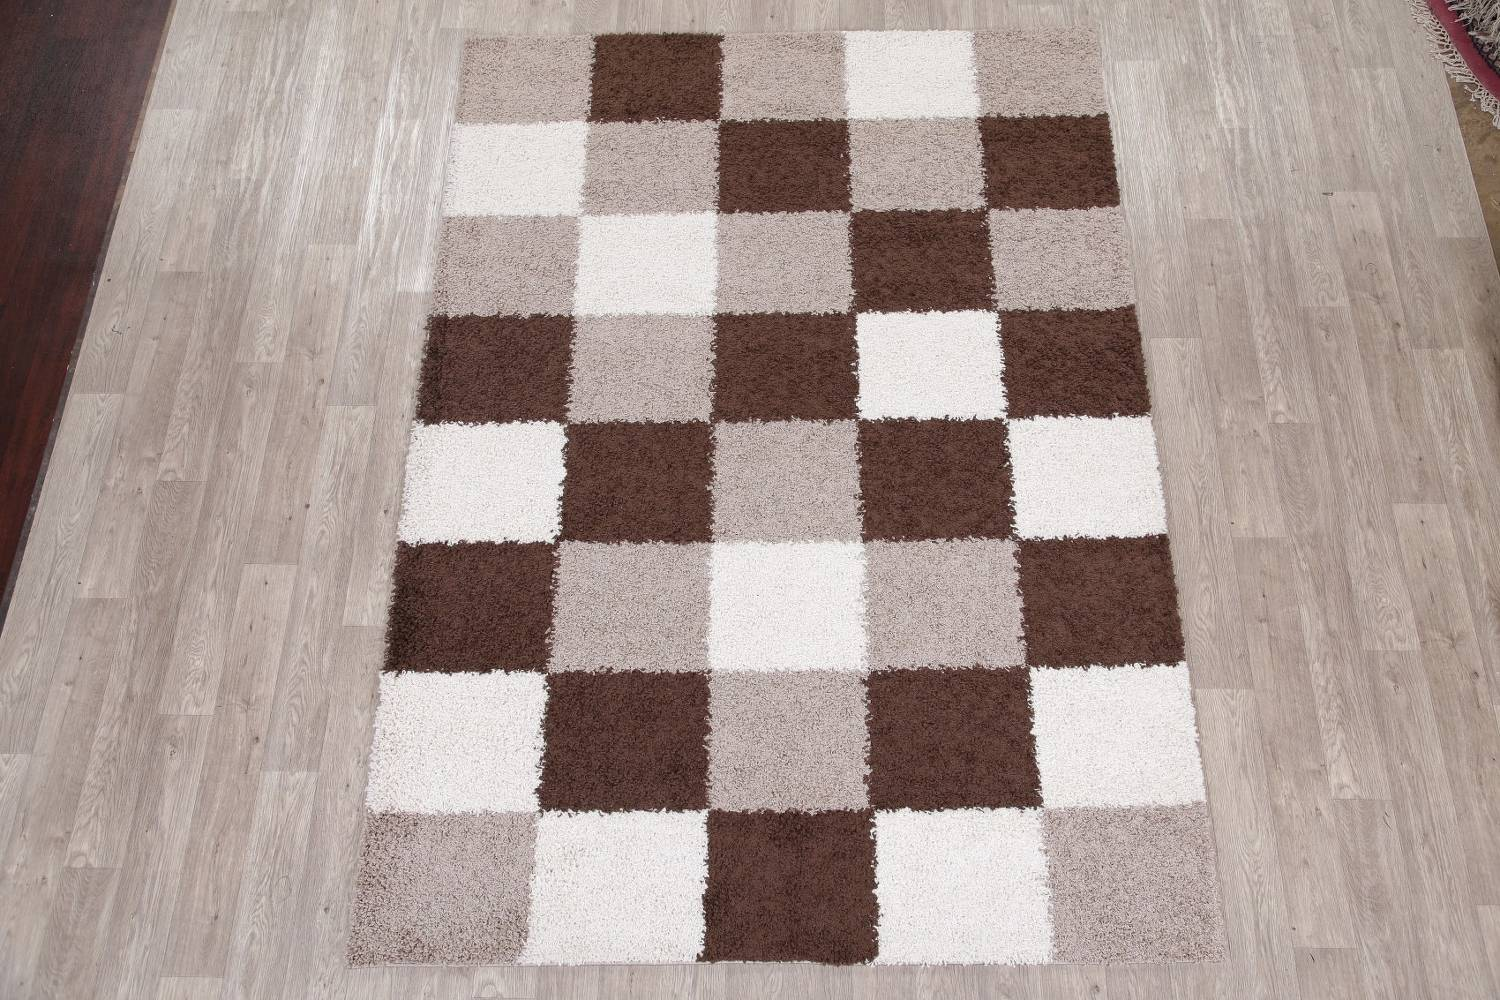 Checked Shaggy Turkish Oriental Rugs image 27